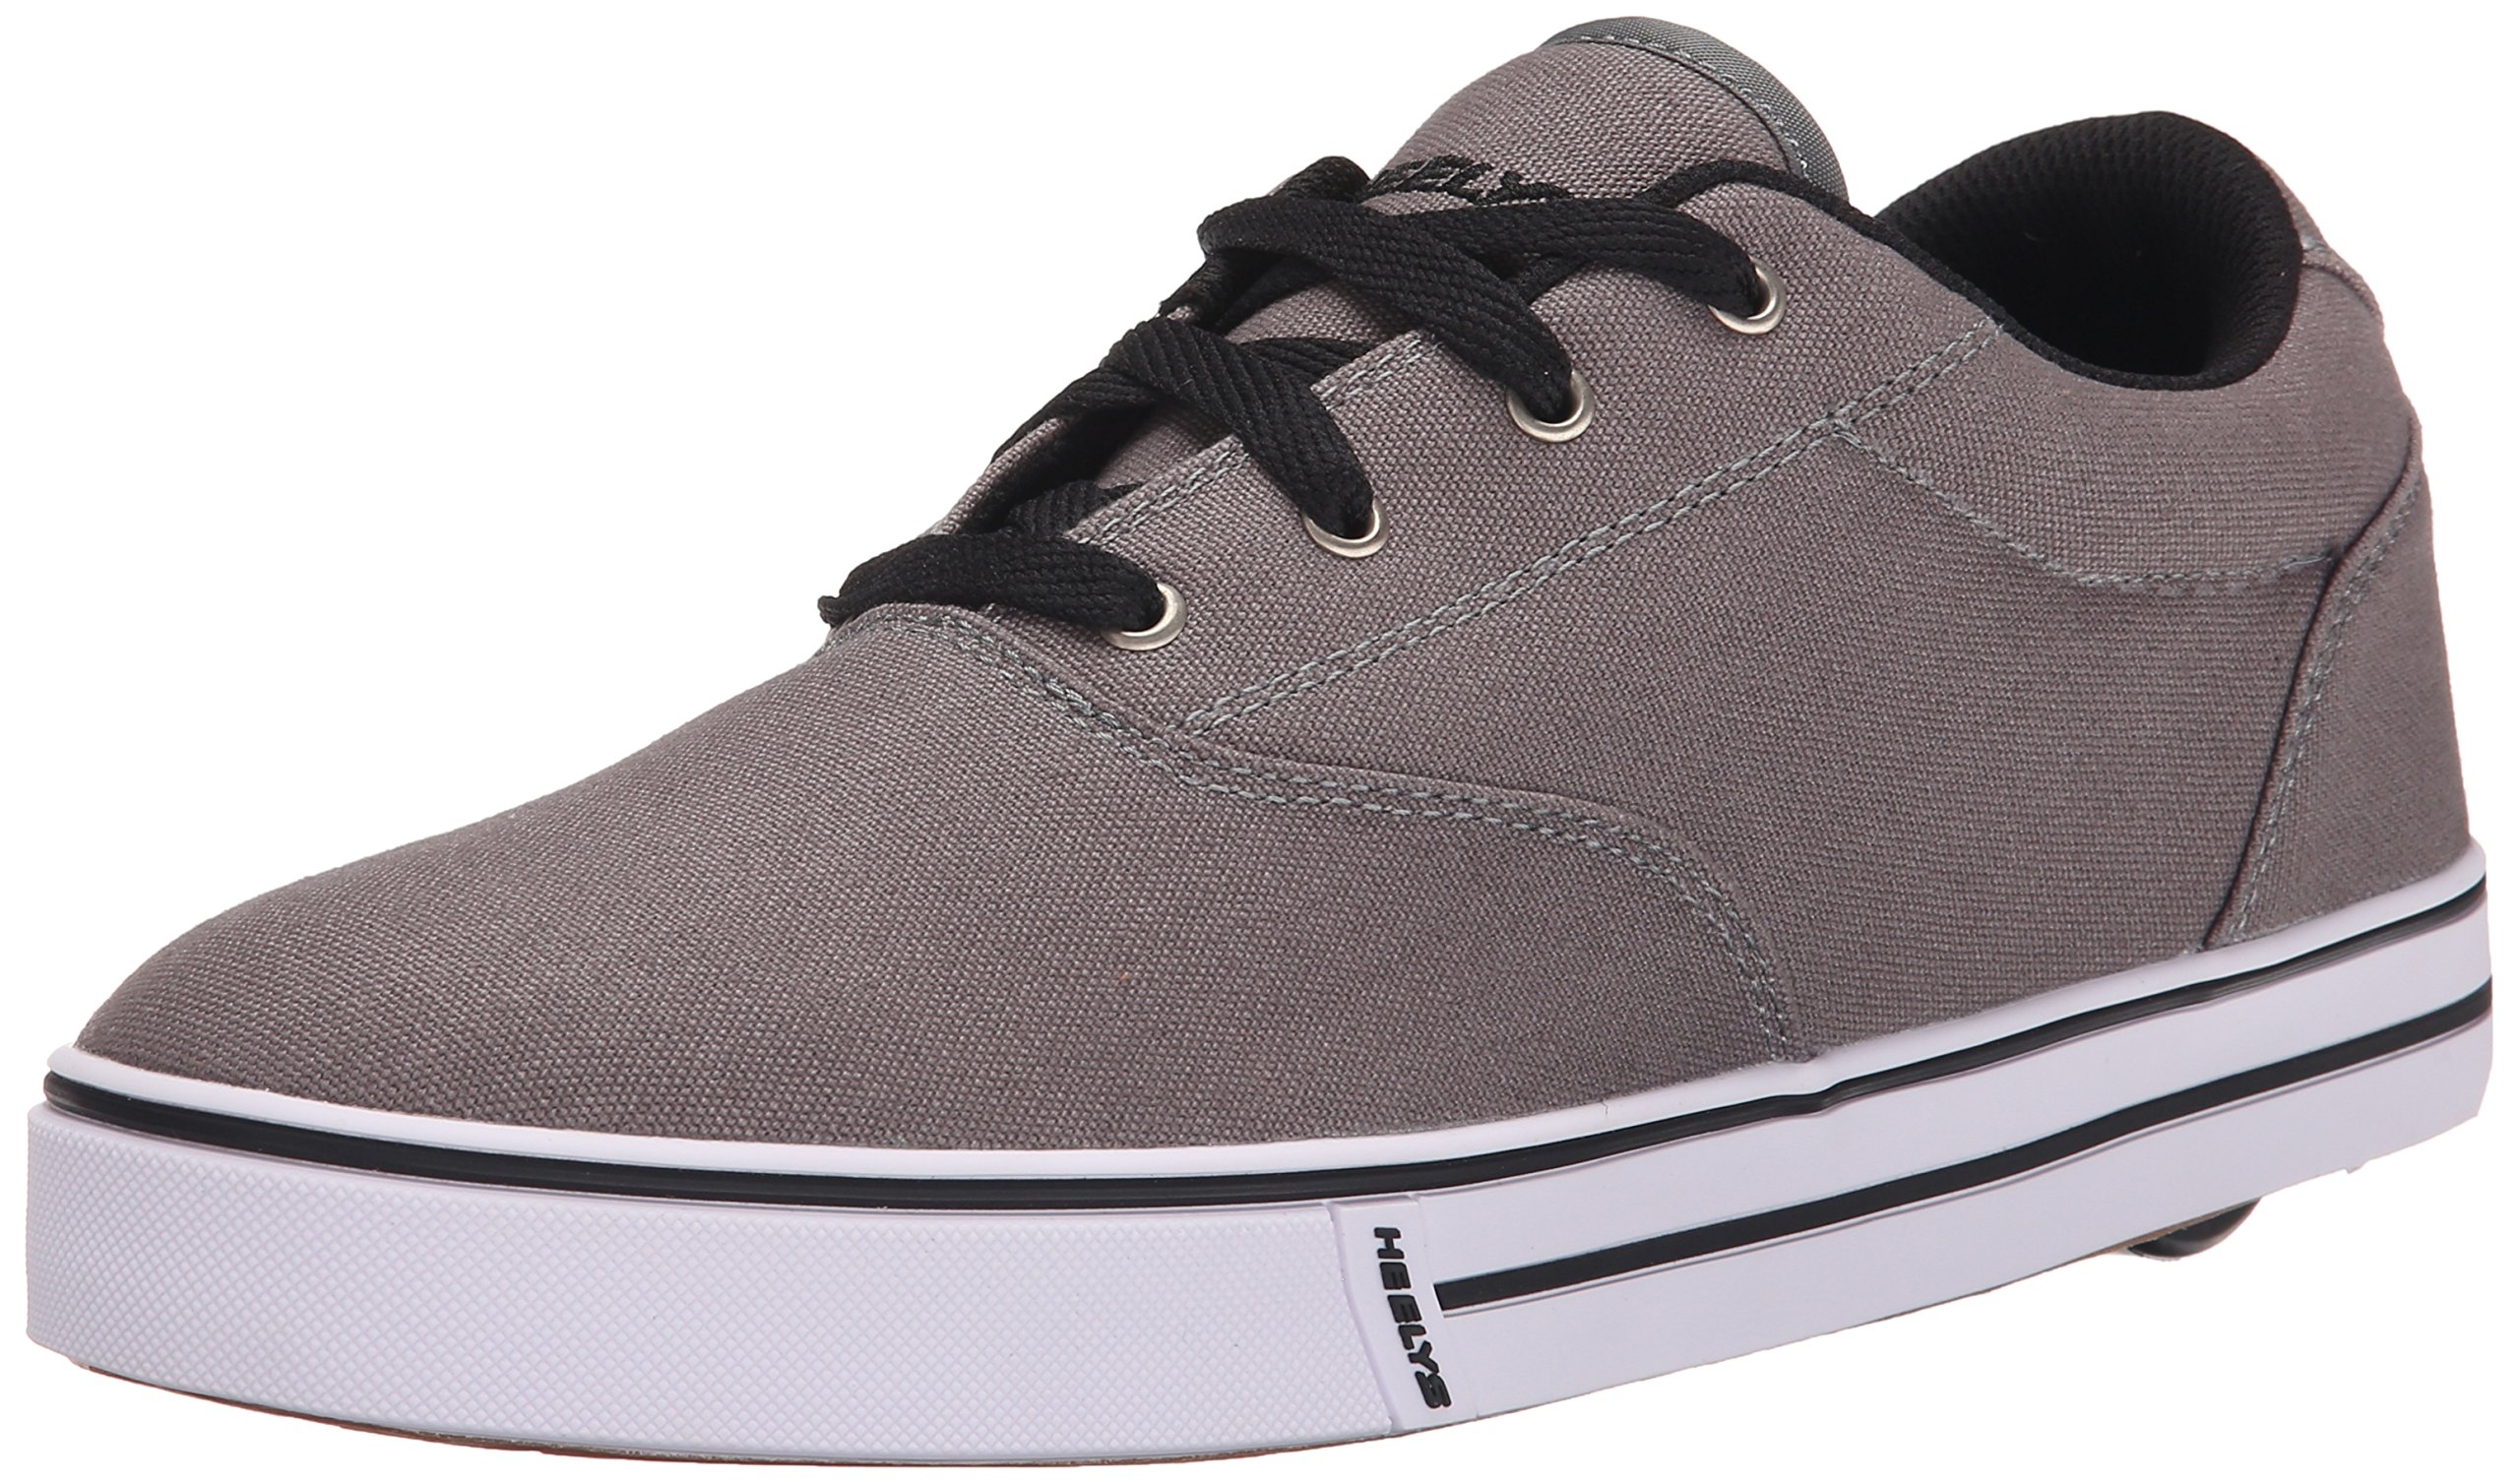 Heelys Men's Launch Fashion Sneaker Grey 10 M US by Heelys (Image #1)